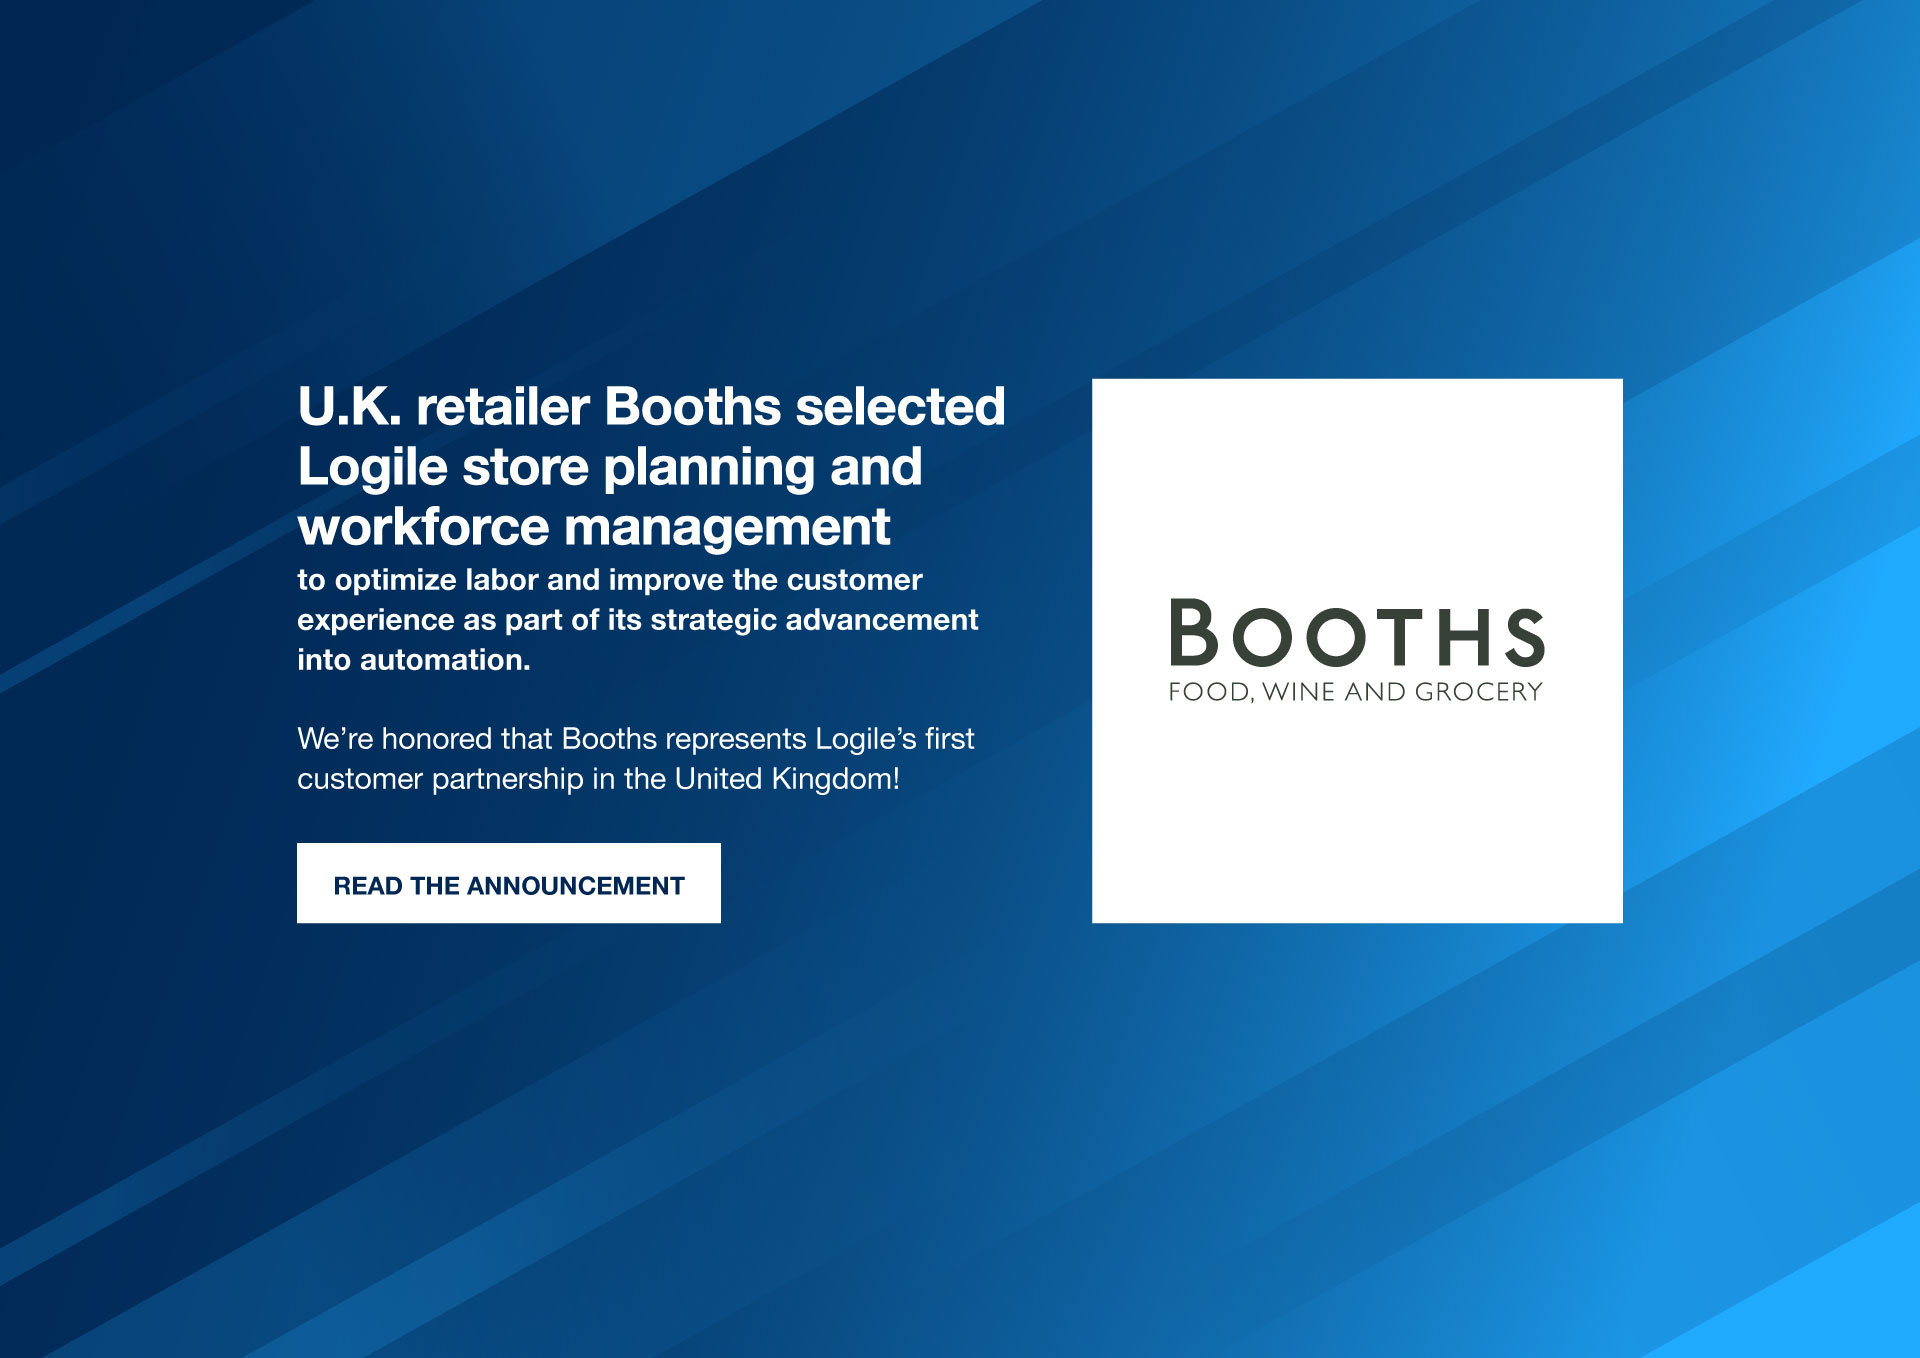 Logile Booths Press Release web banner